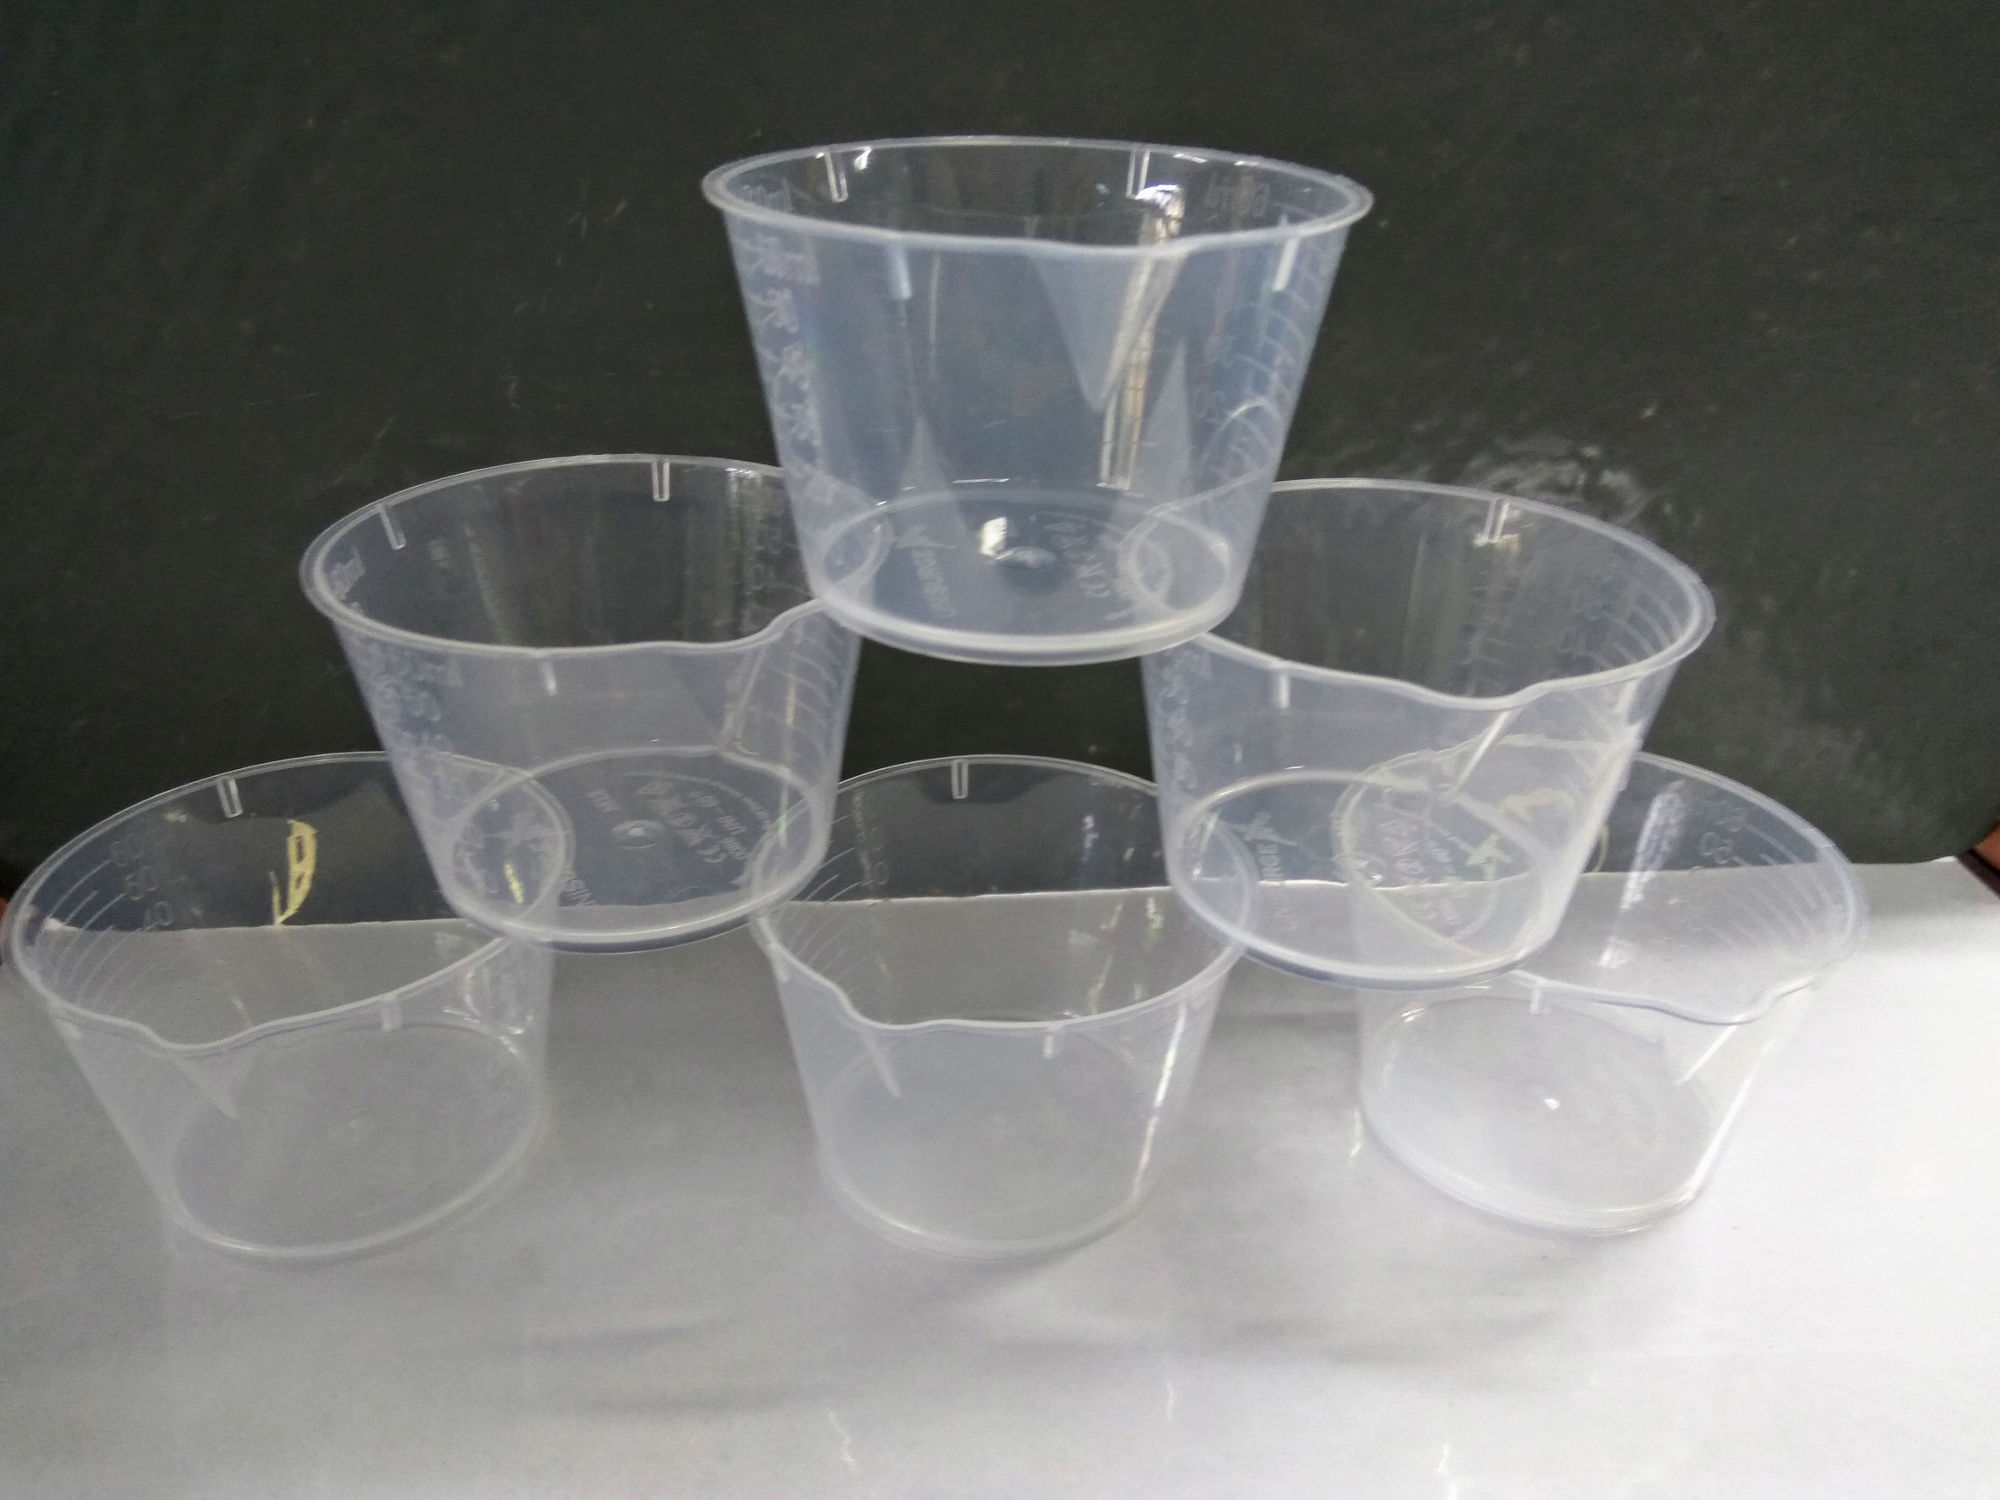 60ml Plastic Cup with Spout (single)